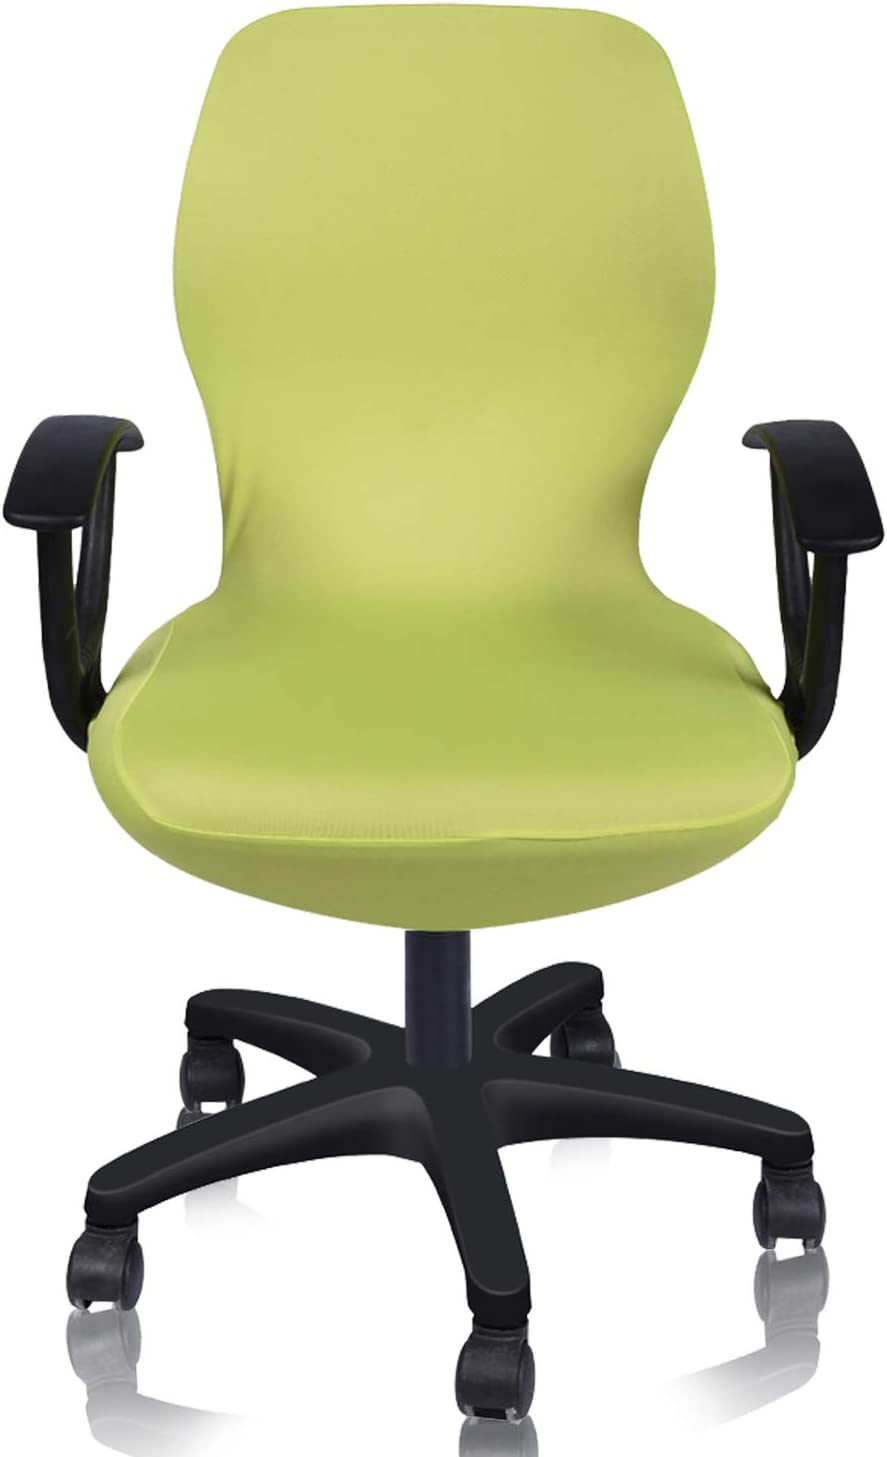 Deisy Dee Computer Office Chair Covers Pure Color Universal Chair Cover Stretch Rotating Chair Slipcovers Cover ONLY Chair Covers C098 (Lemon Green)